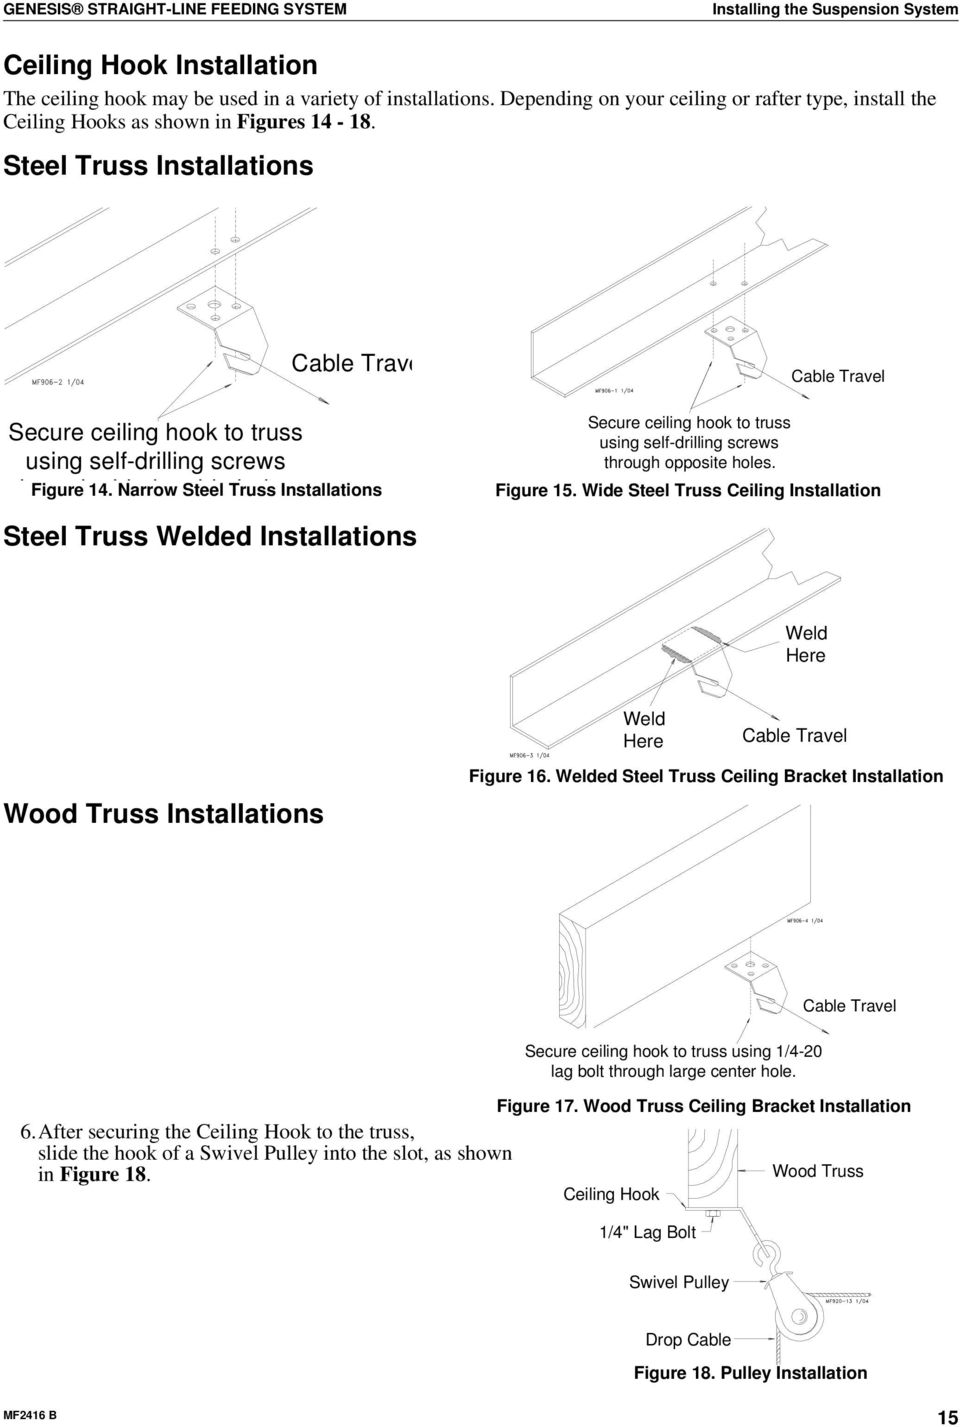 Genesis Straight Line Feeding System Installation And Operation House Wiring Diagram Steel Truss Installations Secure Ceiling Hook To Using Self Drilling Screws H Id B